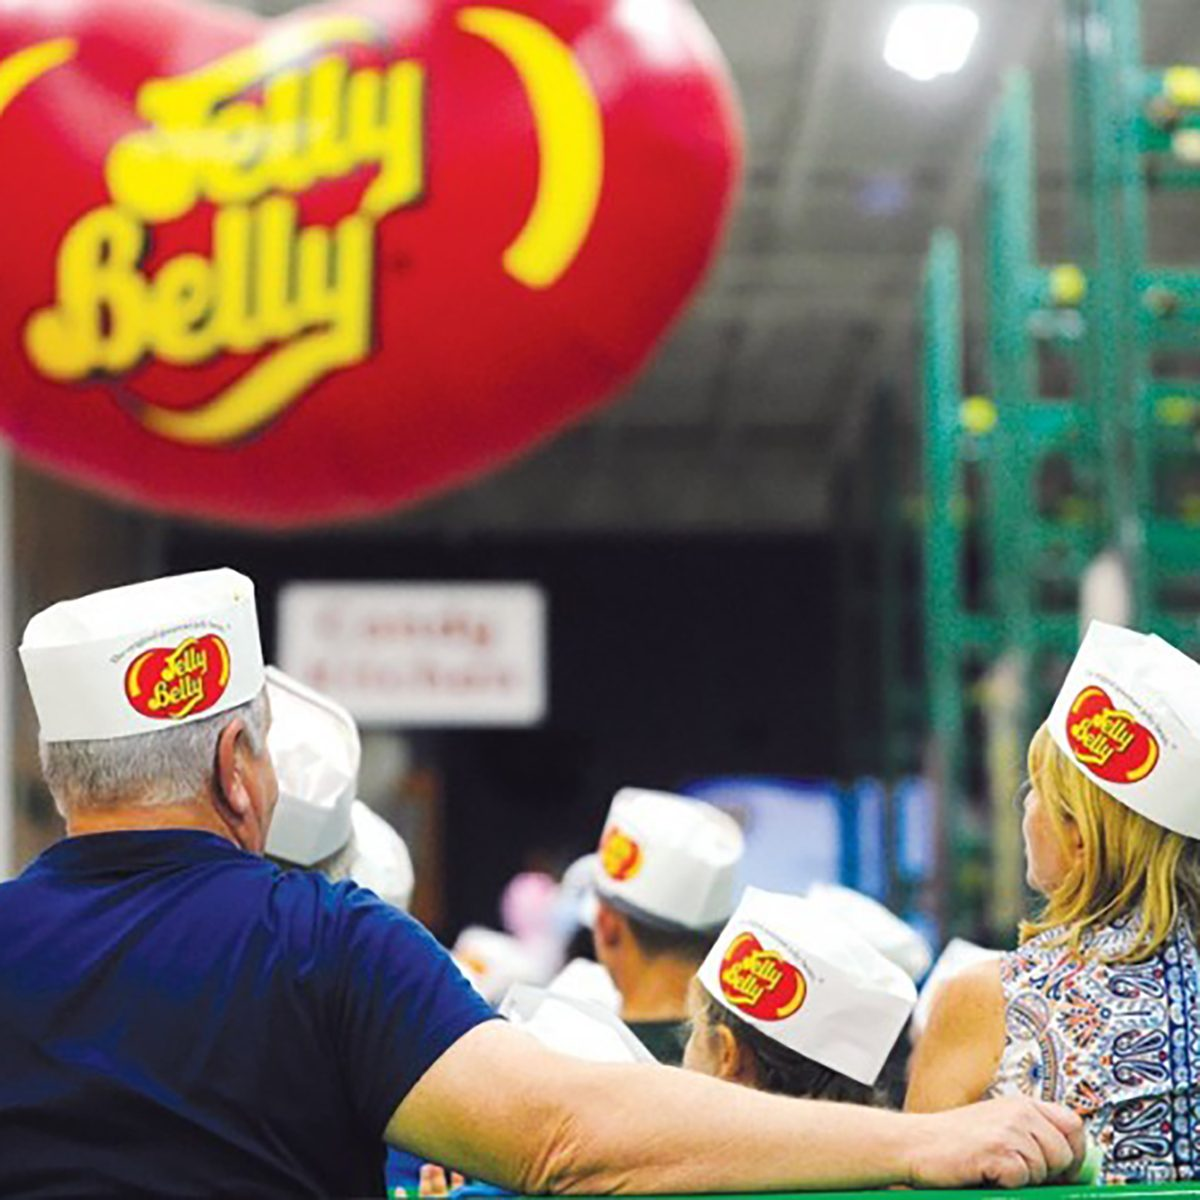 10 Secrets of the Jelly Belly Warehouse | Taste of Home